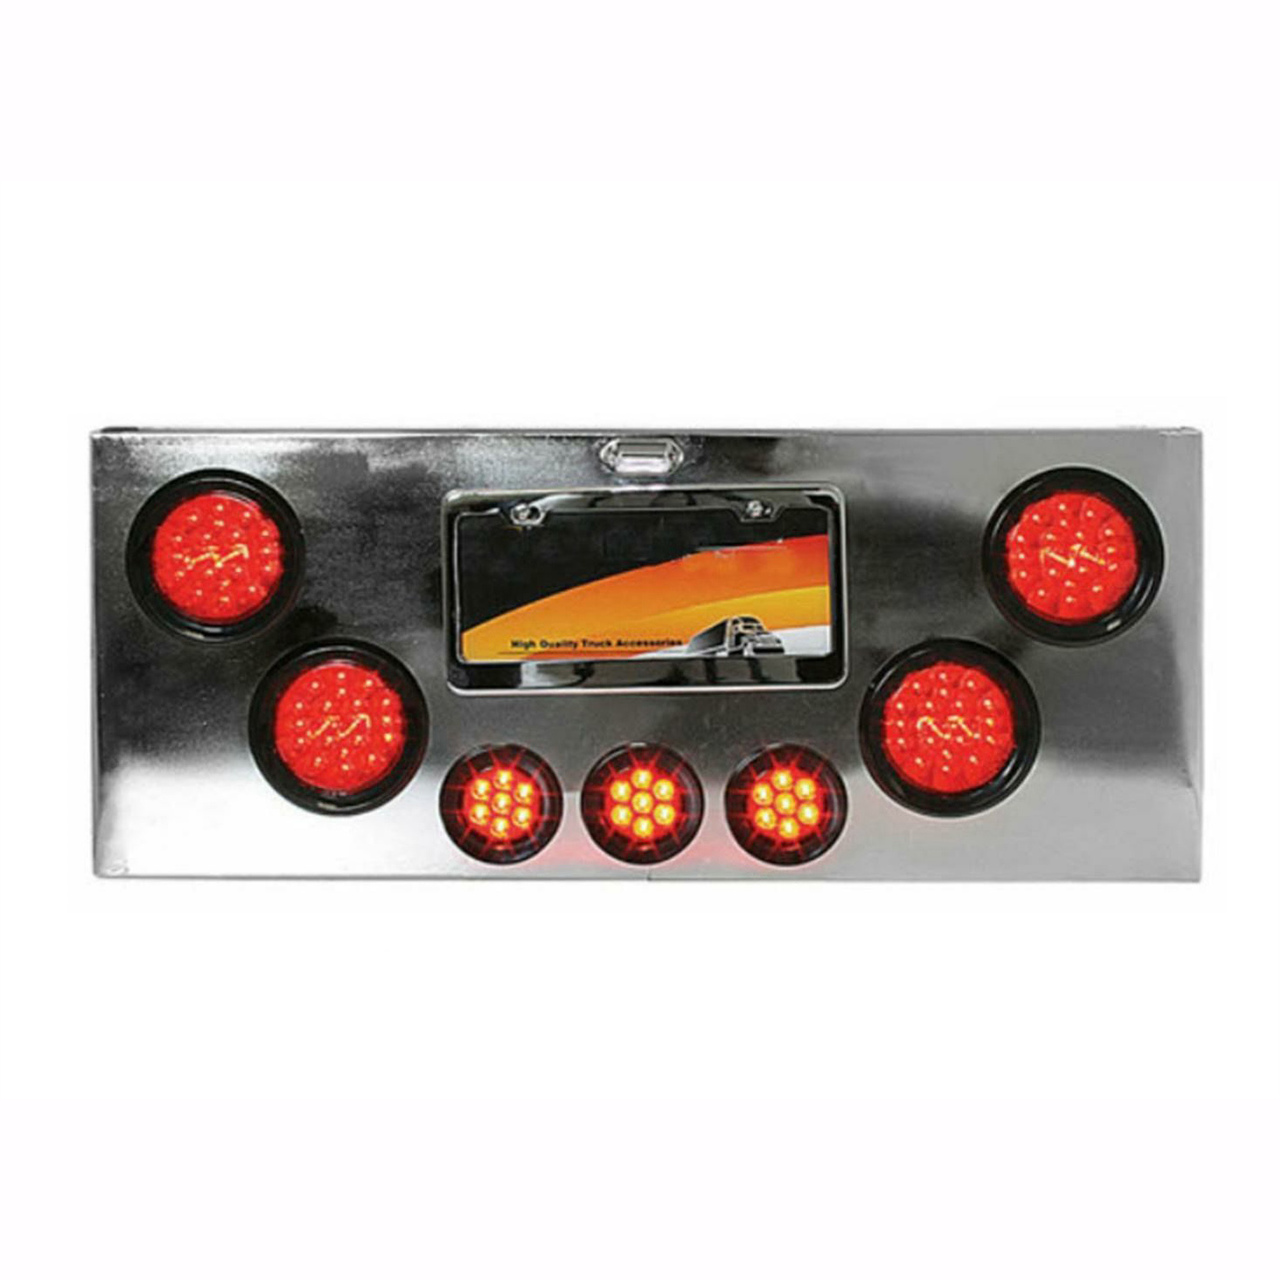 Led Lights For Semi Trucks >> Chrome Plated Rear Center Panel With Red Led Lights Red Lens For Semi Trucks